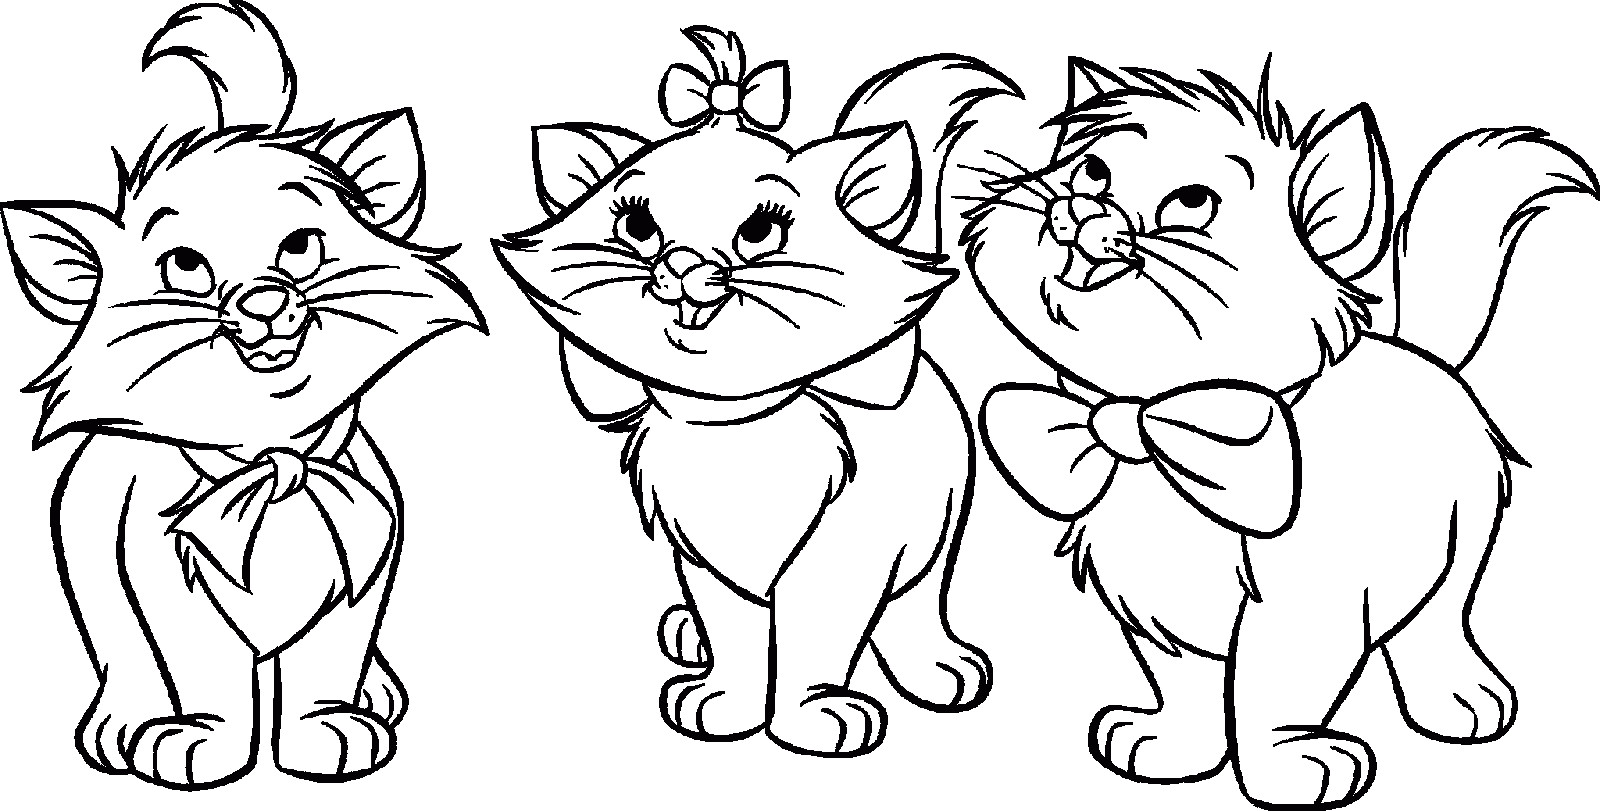 Puppy And Kitten Coloring Pages At Getdrawings Free Download